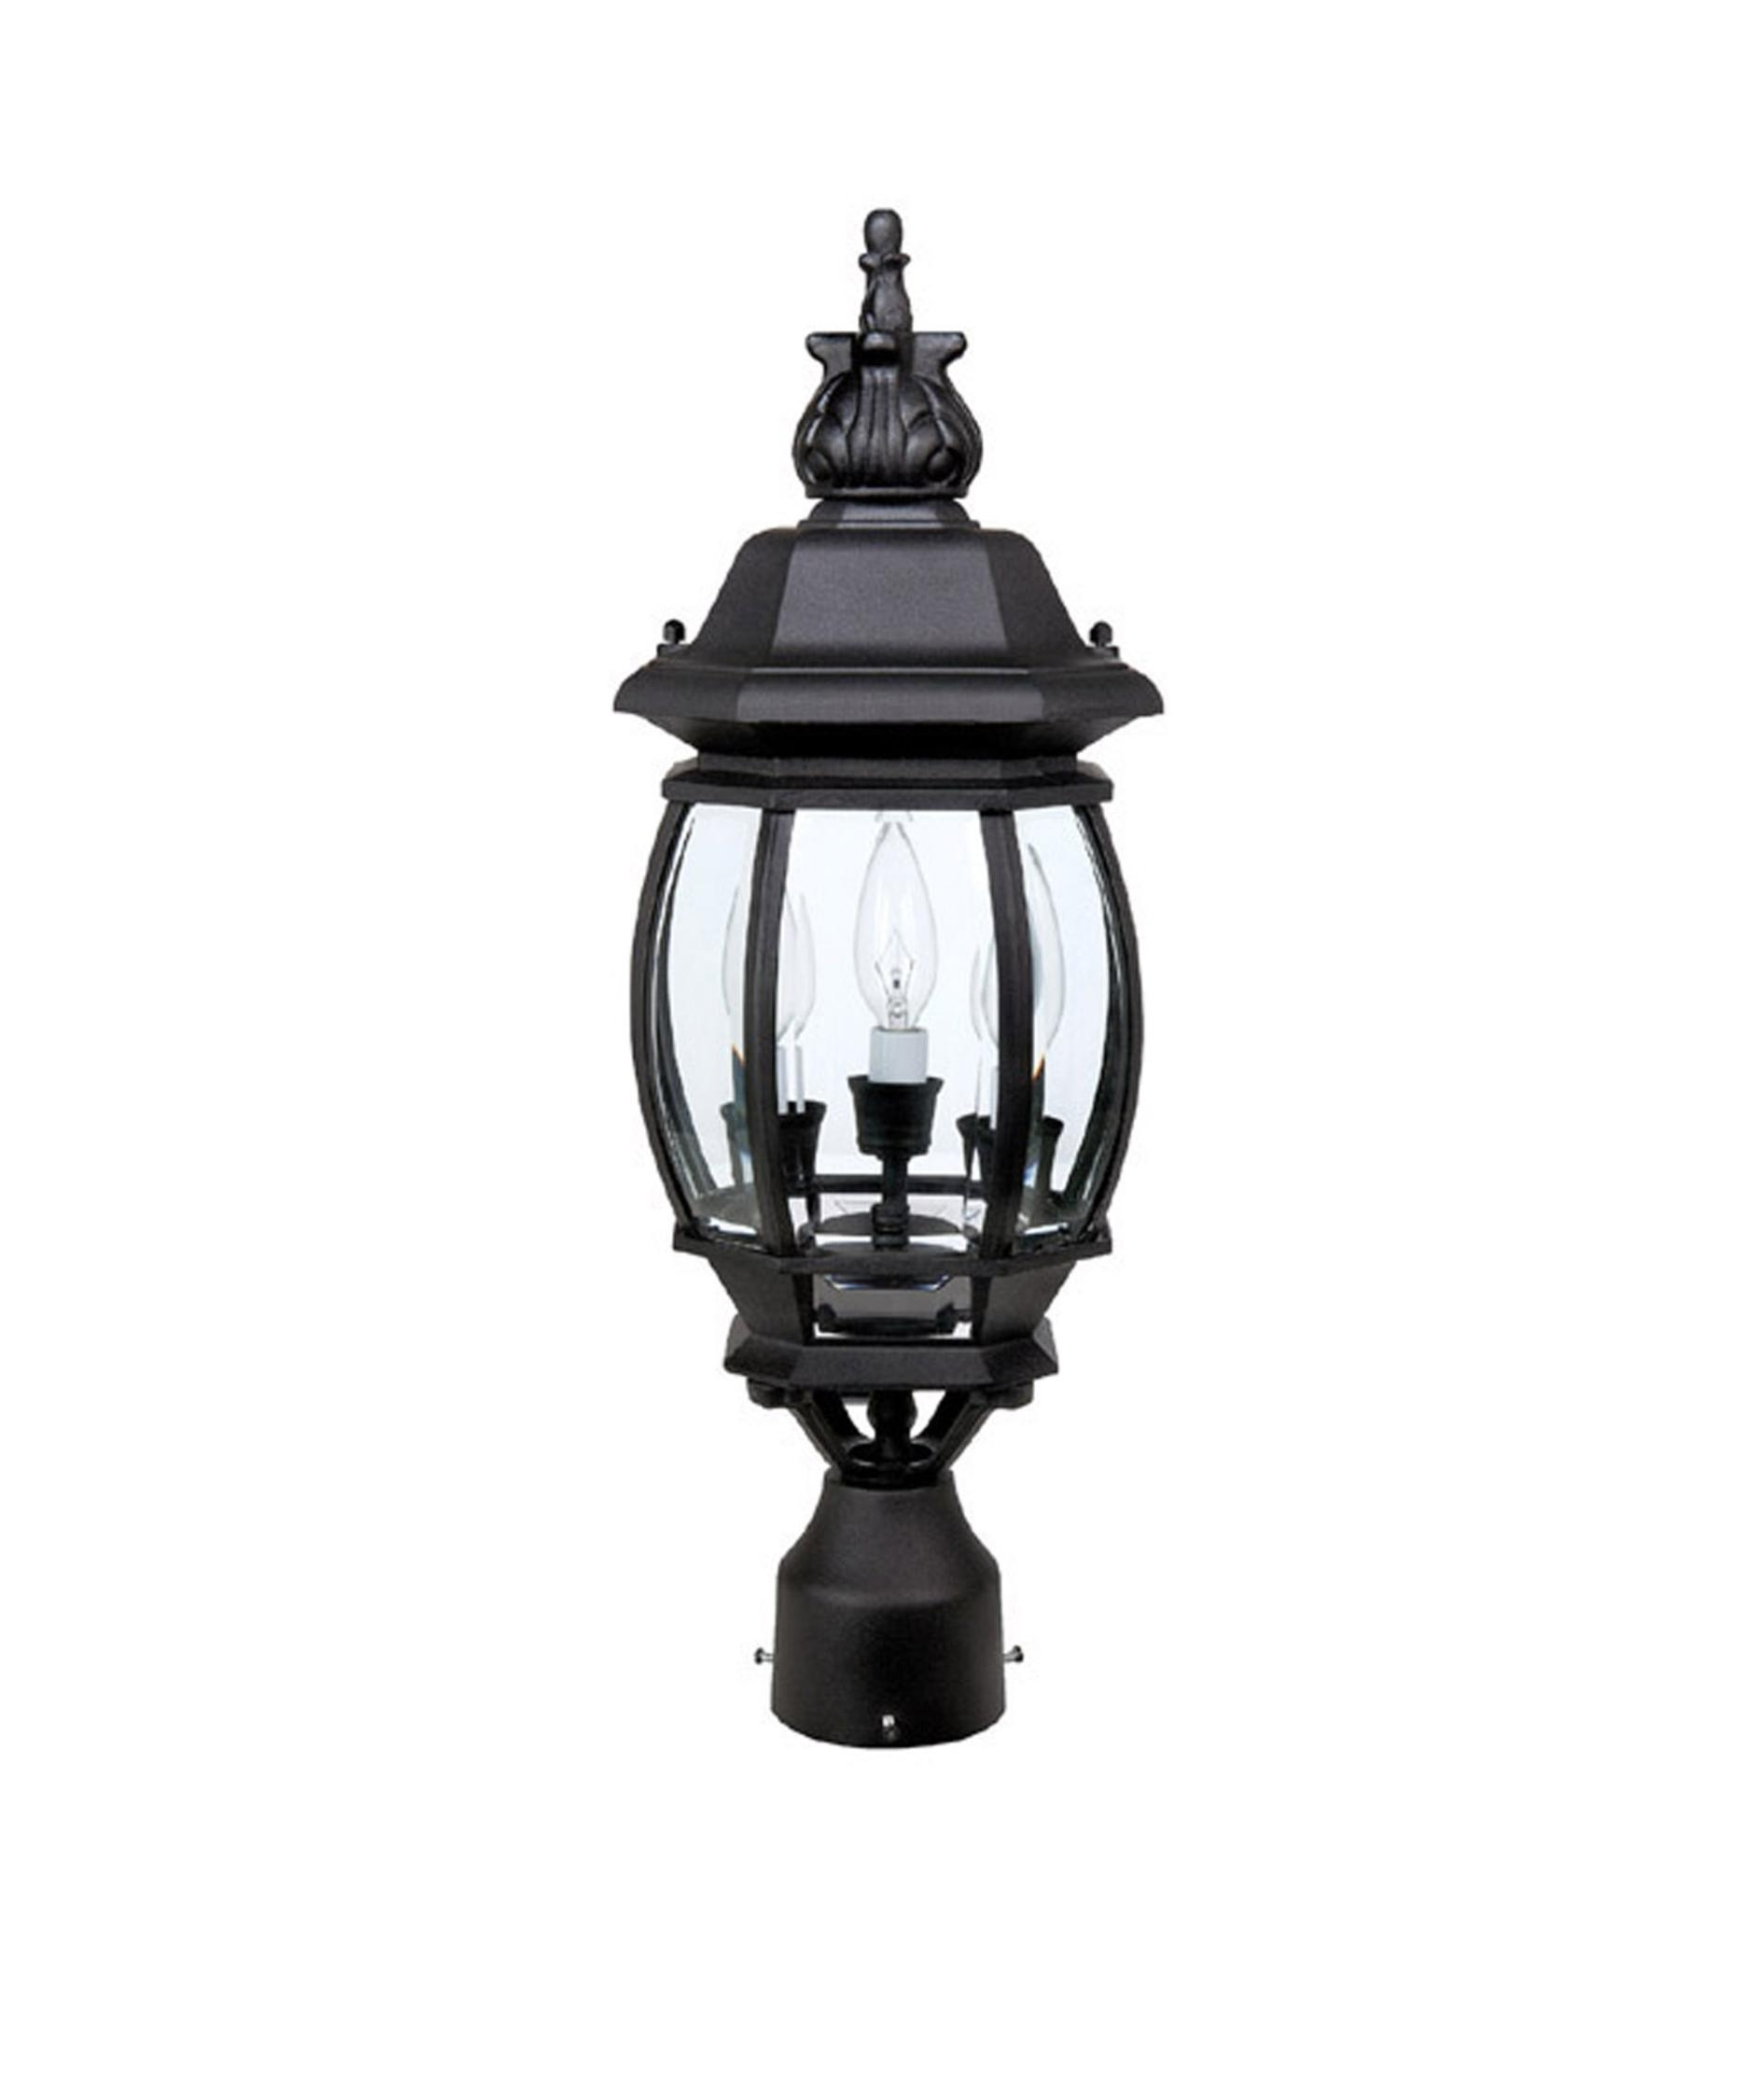 2019 Capital Lighting 9865 French Country 8 Inch Wide 3 Light Outdoor Regarding Outdoor Hanging Post Lights (View 3 of 20)